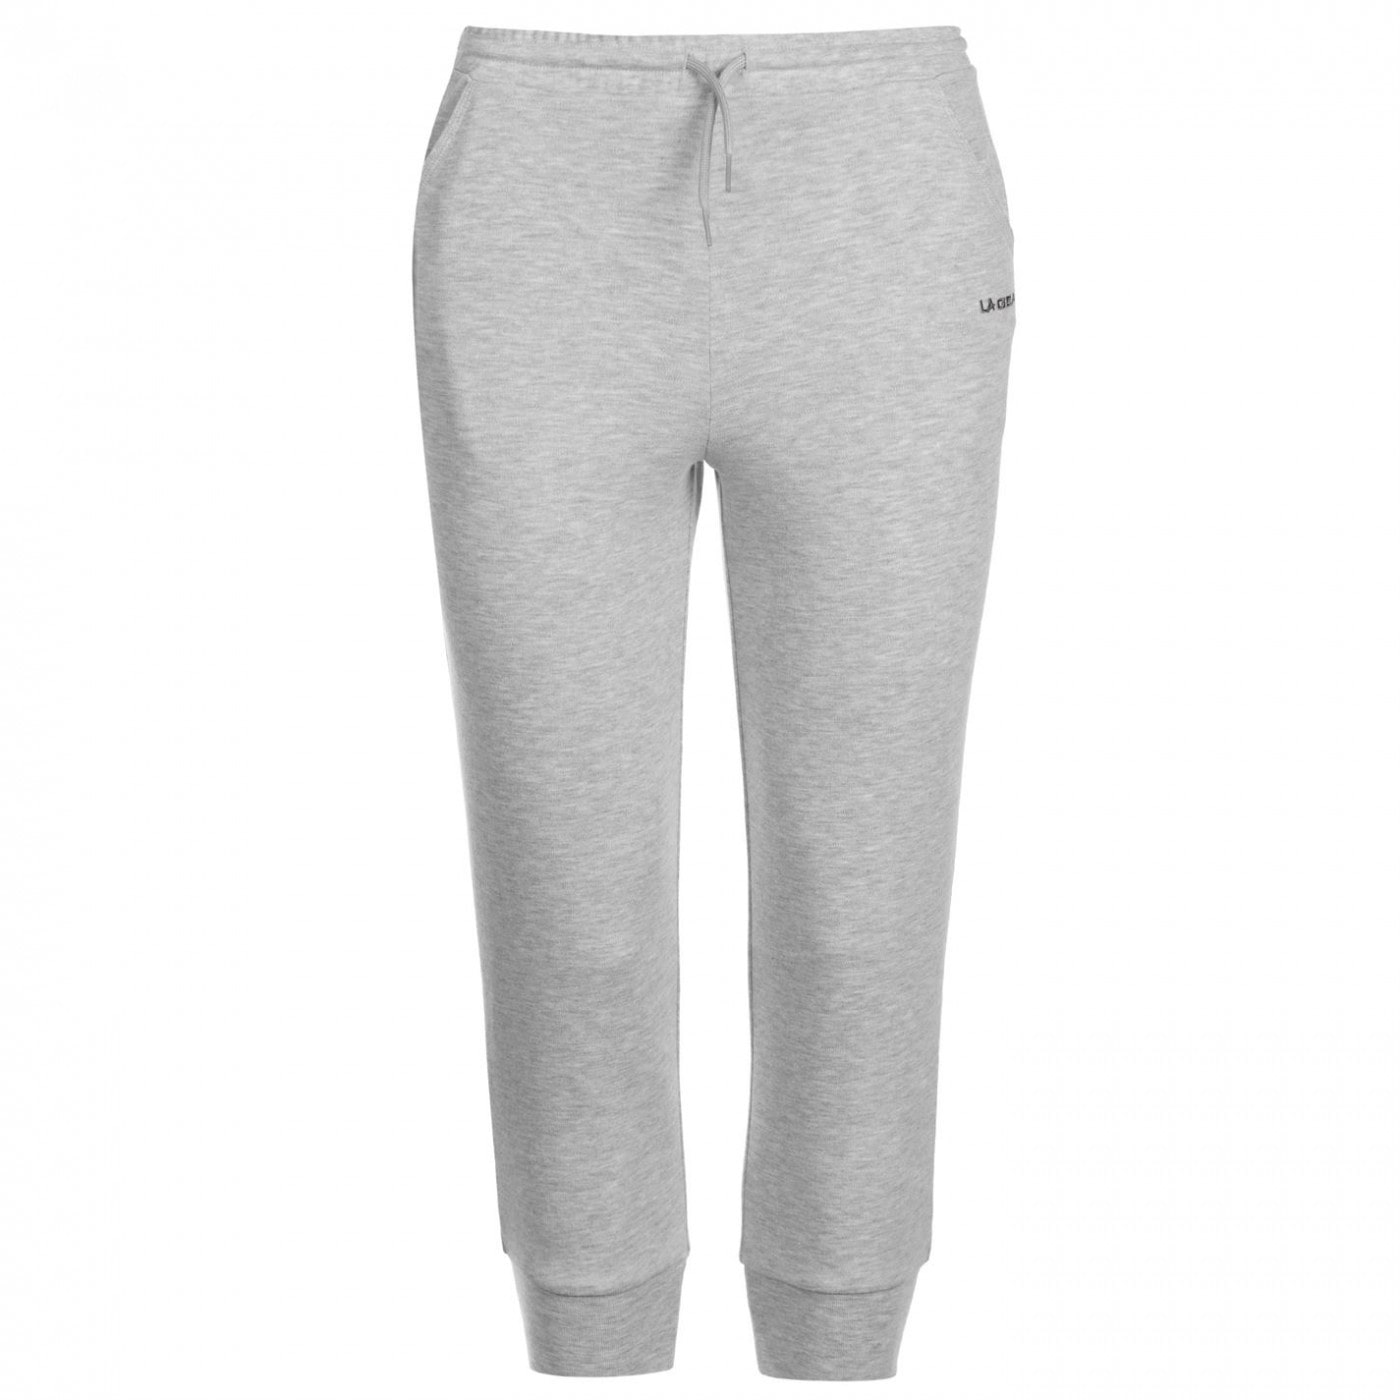 LA Gear Three Quarter Interlock Jogging Pants Ladies